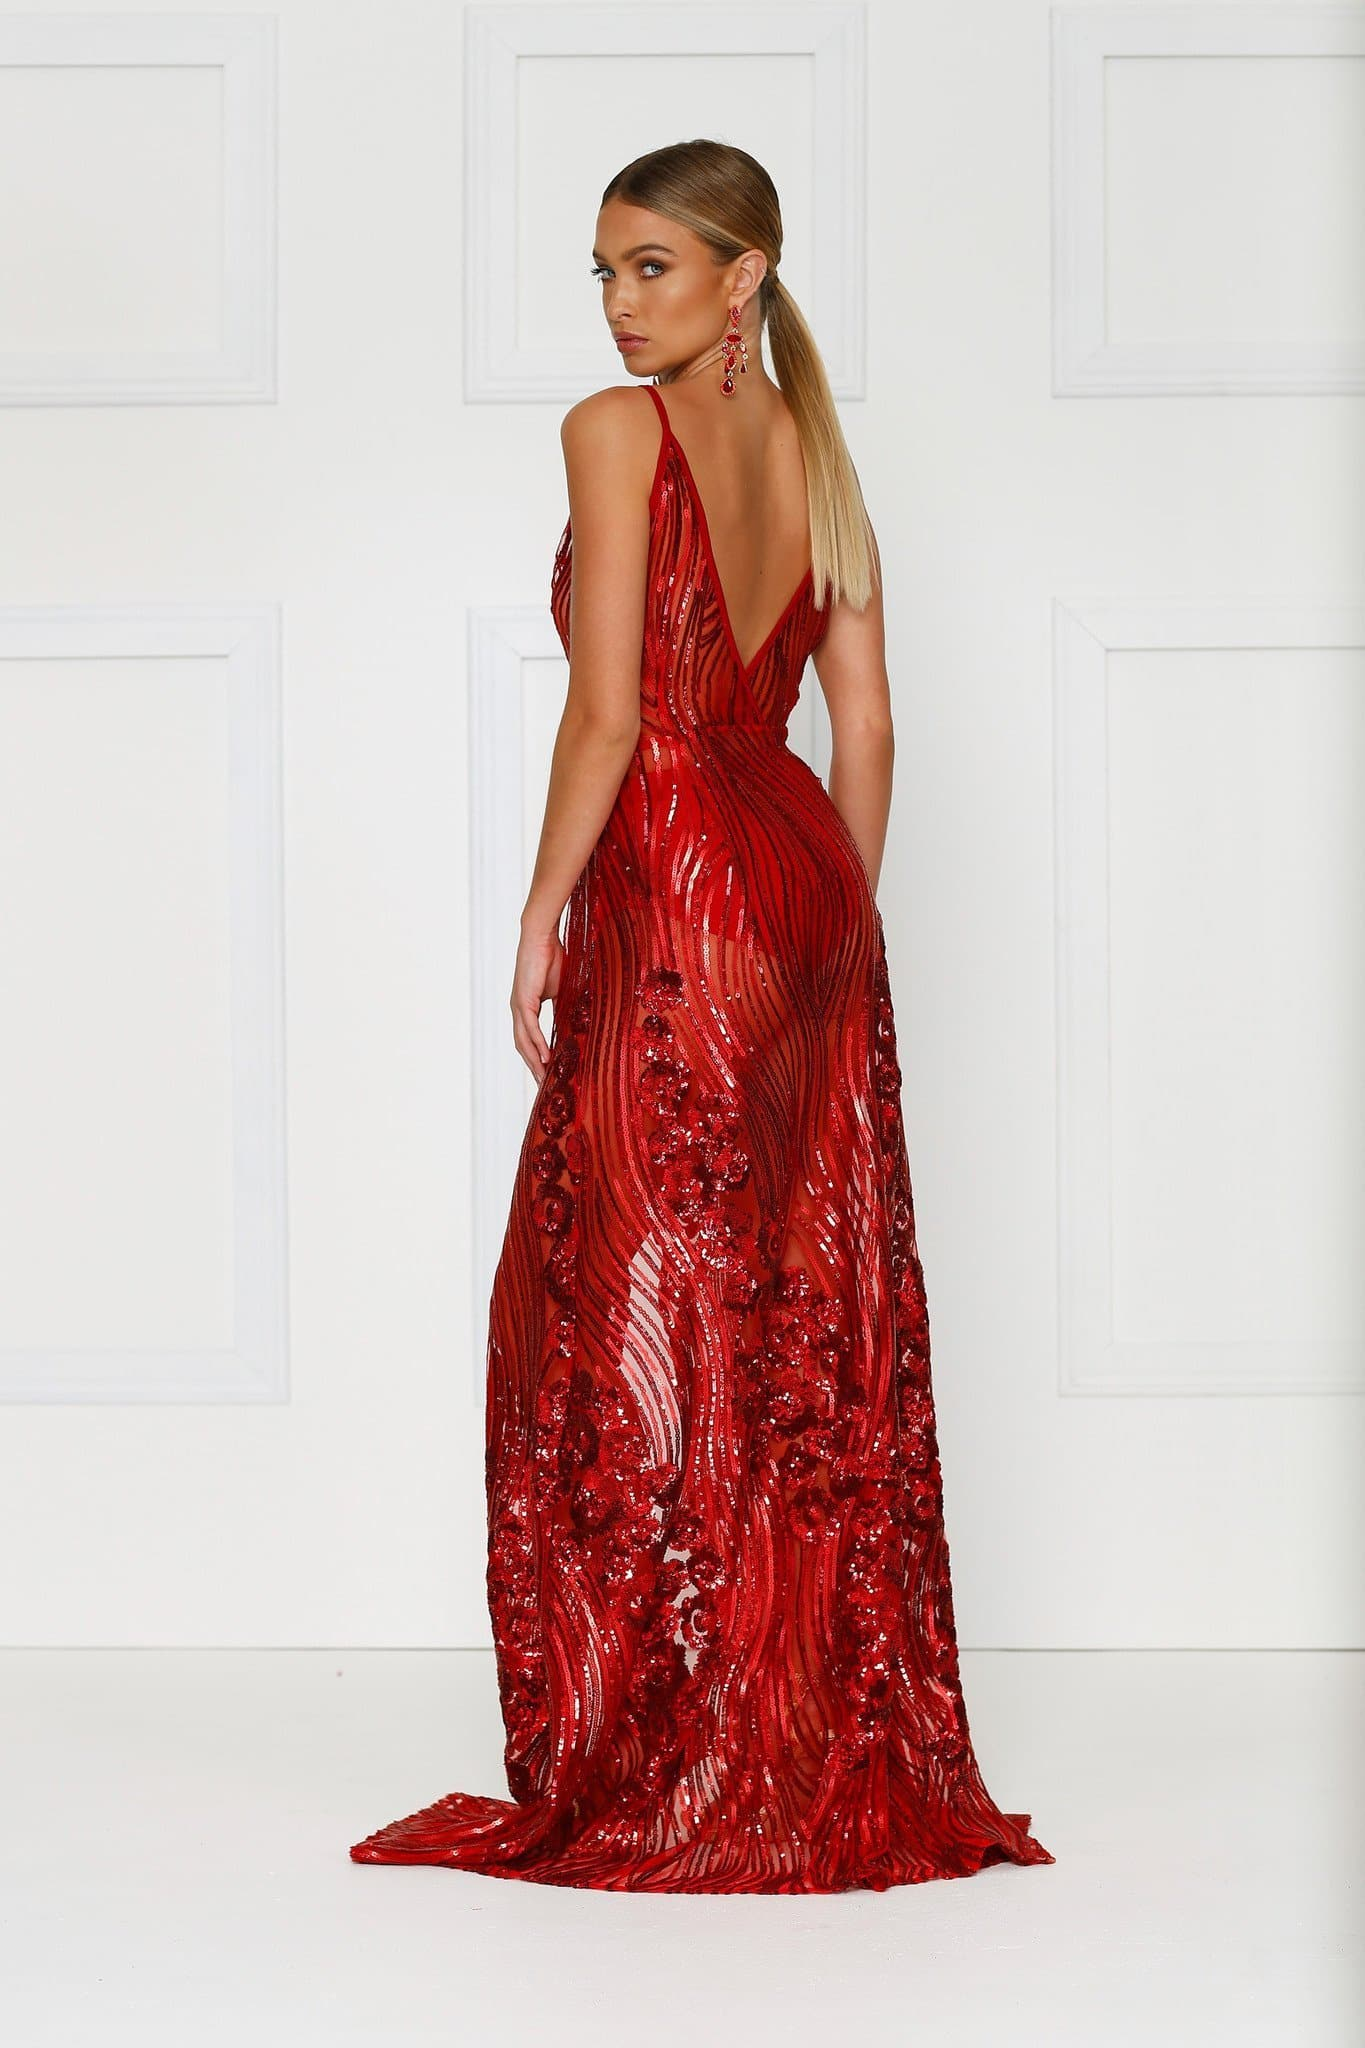 Lacrecia Gown - Red Sheer Sequin V-Neck Front Slit Mermaid Dress